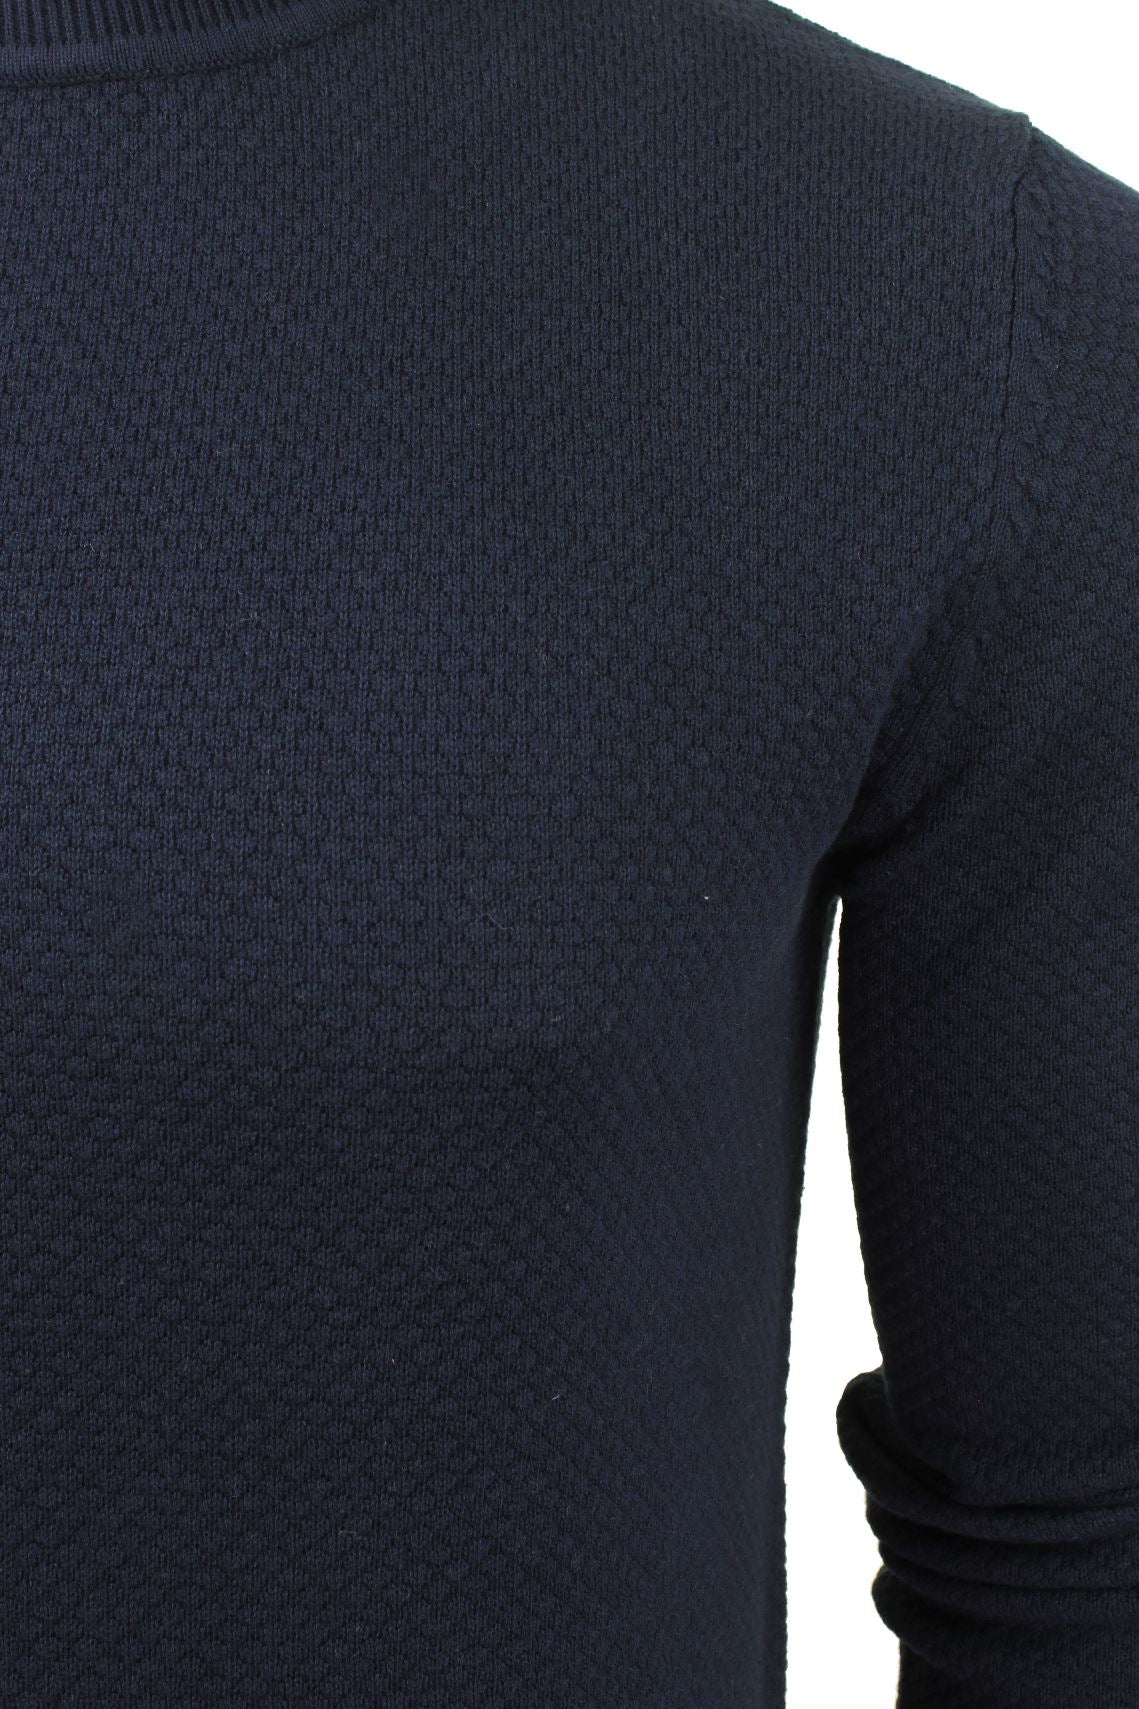 Xact Mens Crew Neck Cotton Jumper_02_XK1013_Rich Navy